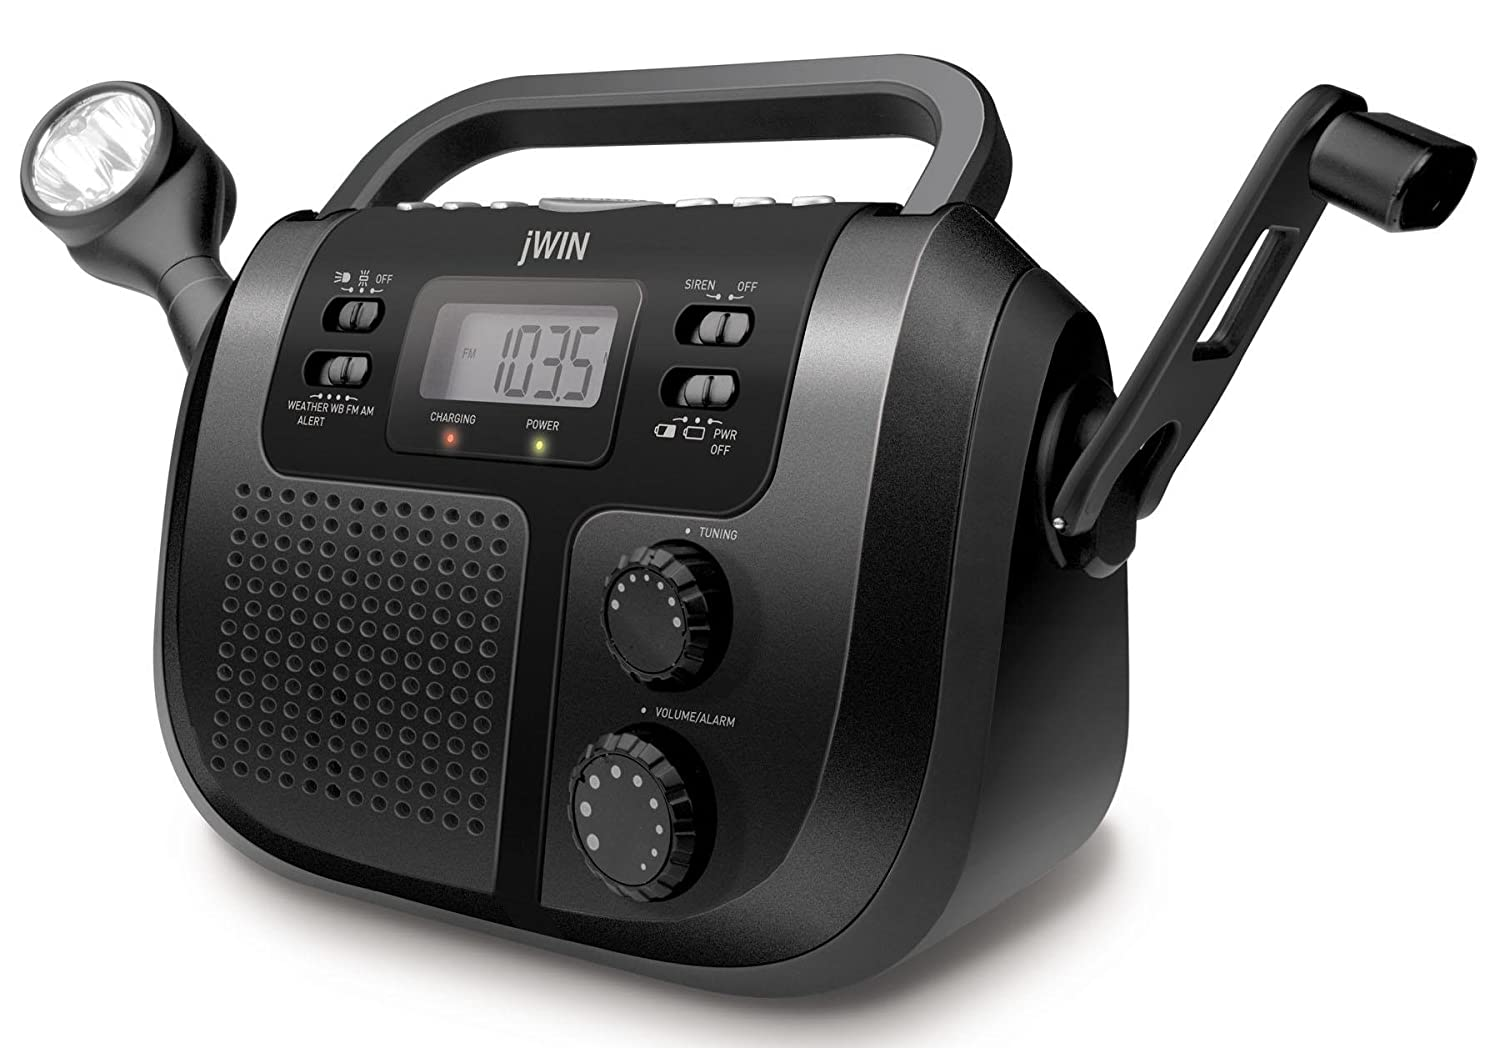 Amazon.com: jWIN JXM125 AM/FM Weather Band Radio (Discontinued by  Manufacturer): Home Audio & Theater